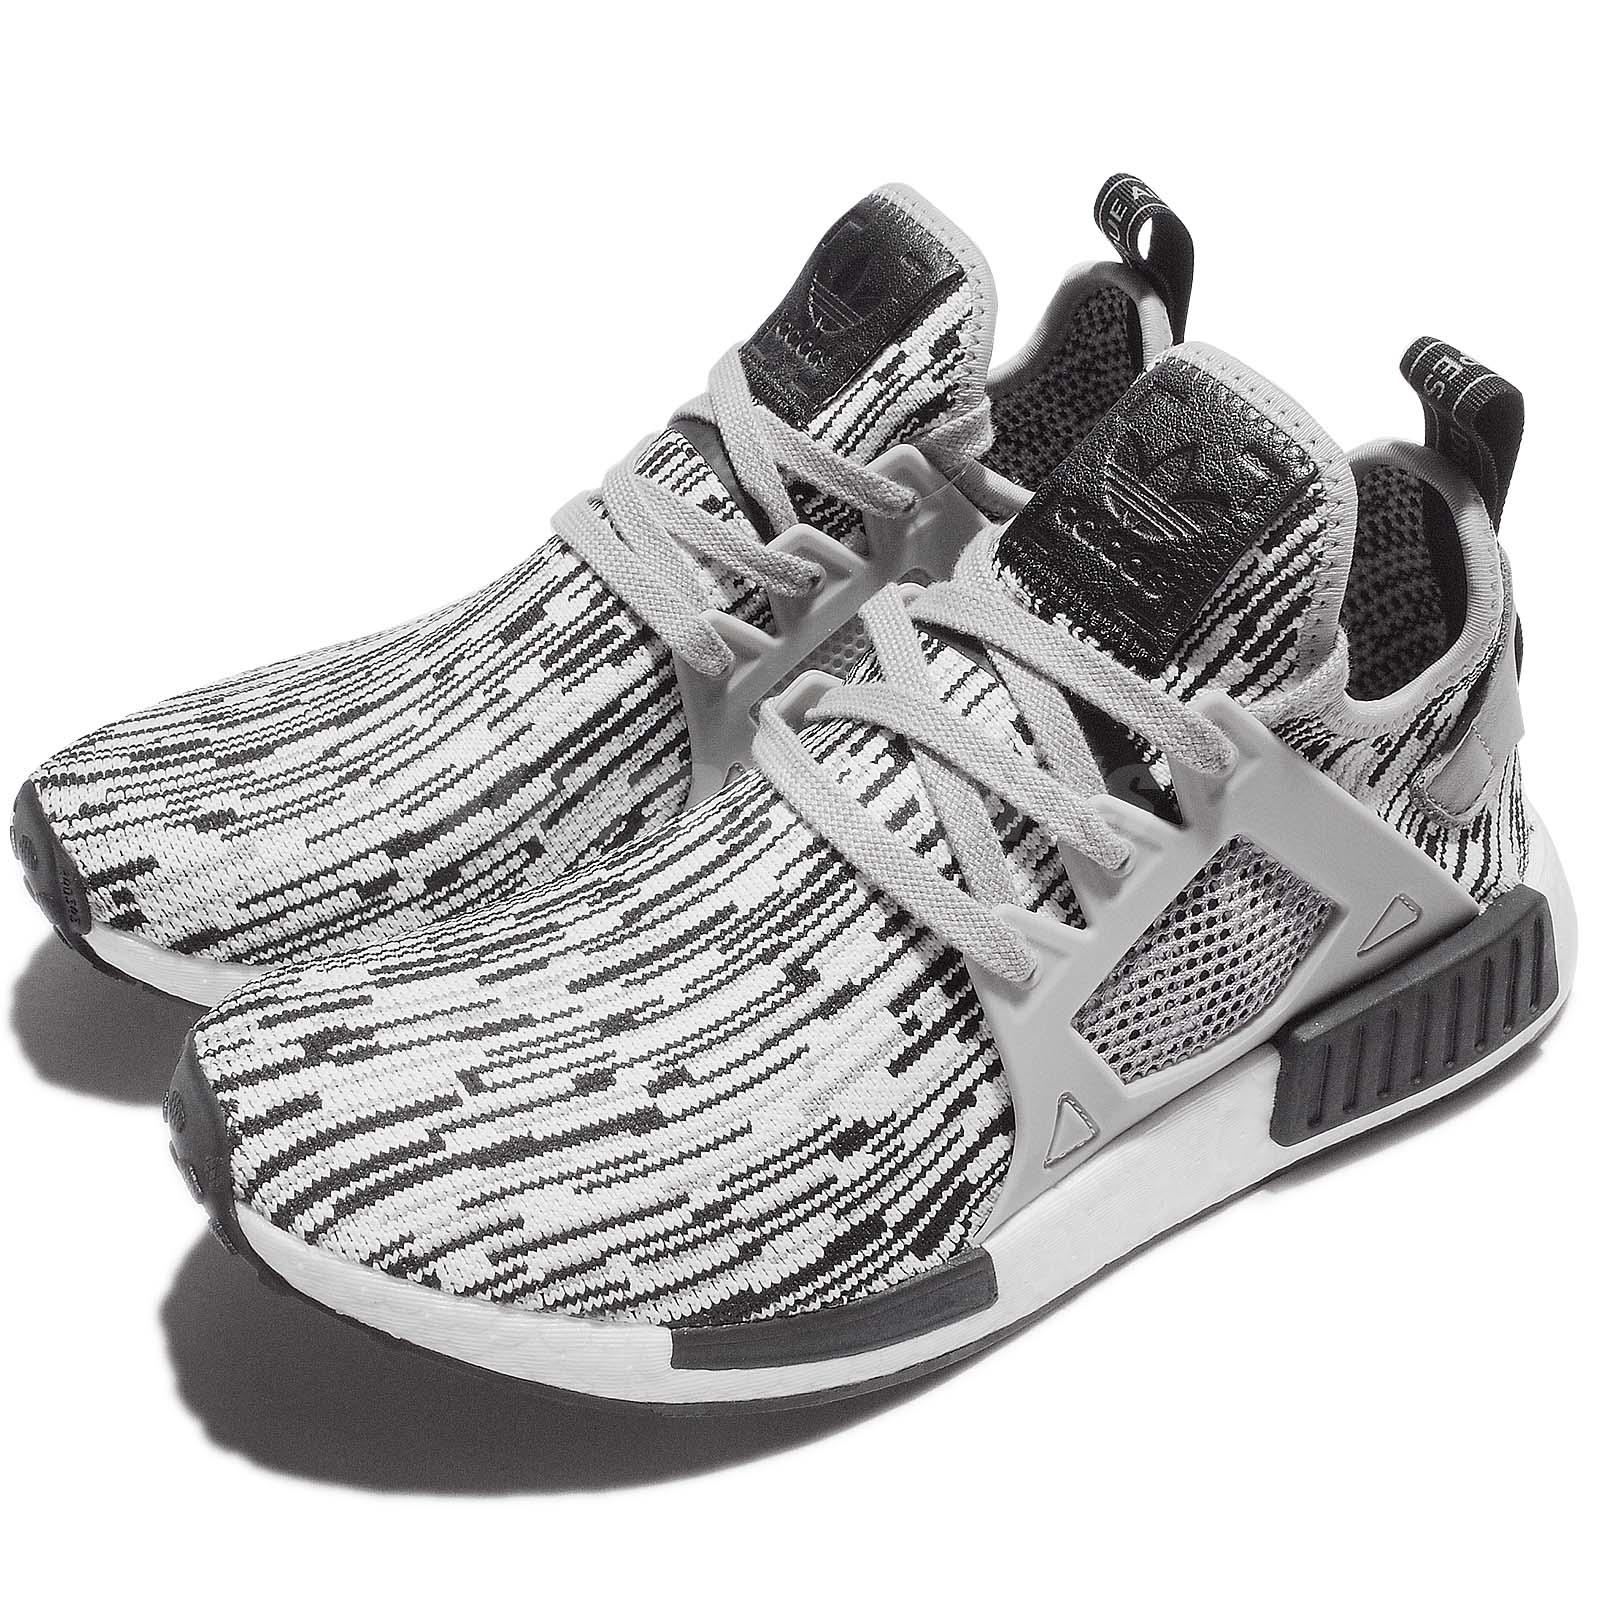 ADIDAS NMD XR1 OG SIZE US11.5 / EU46 (NEW) Secret Sneaker